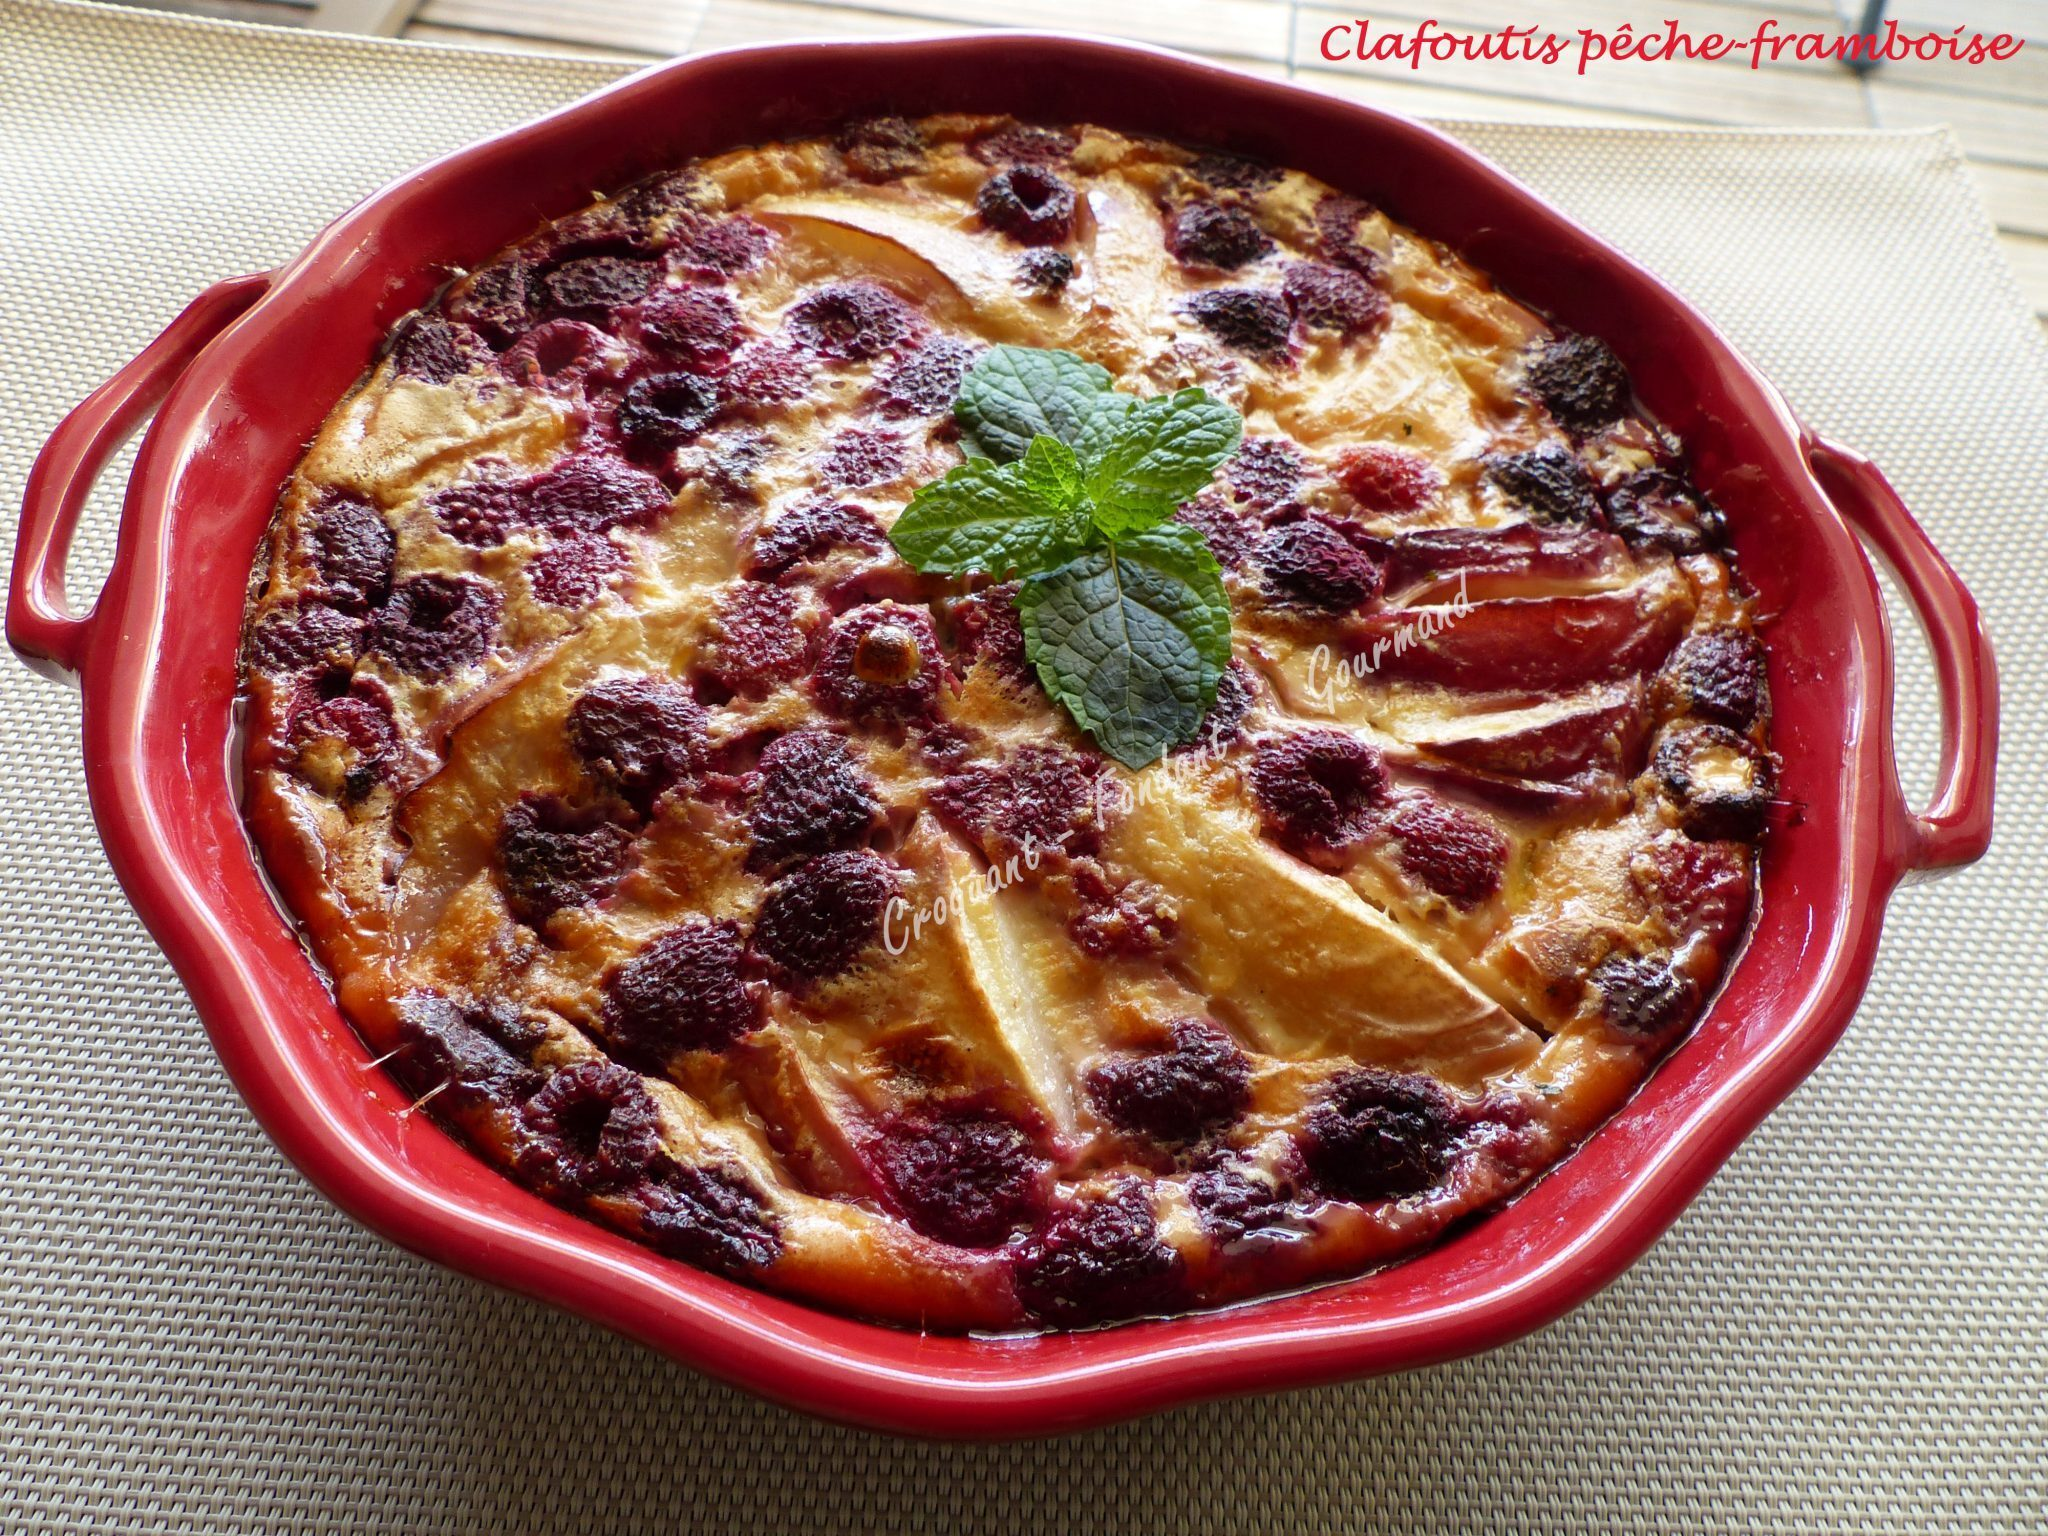 Clafoutis pêche-framboise